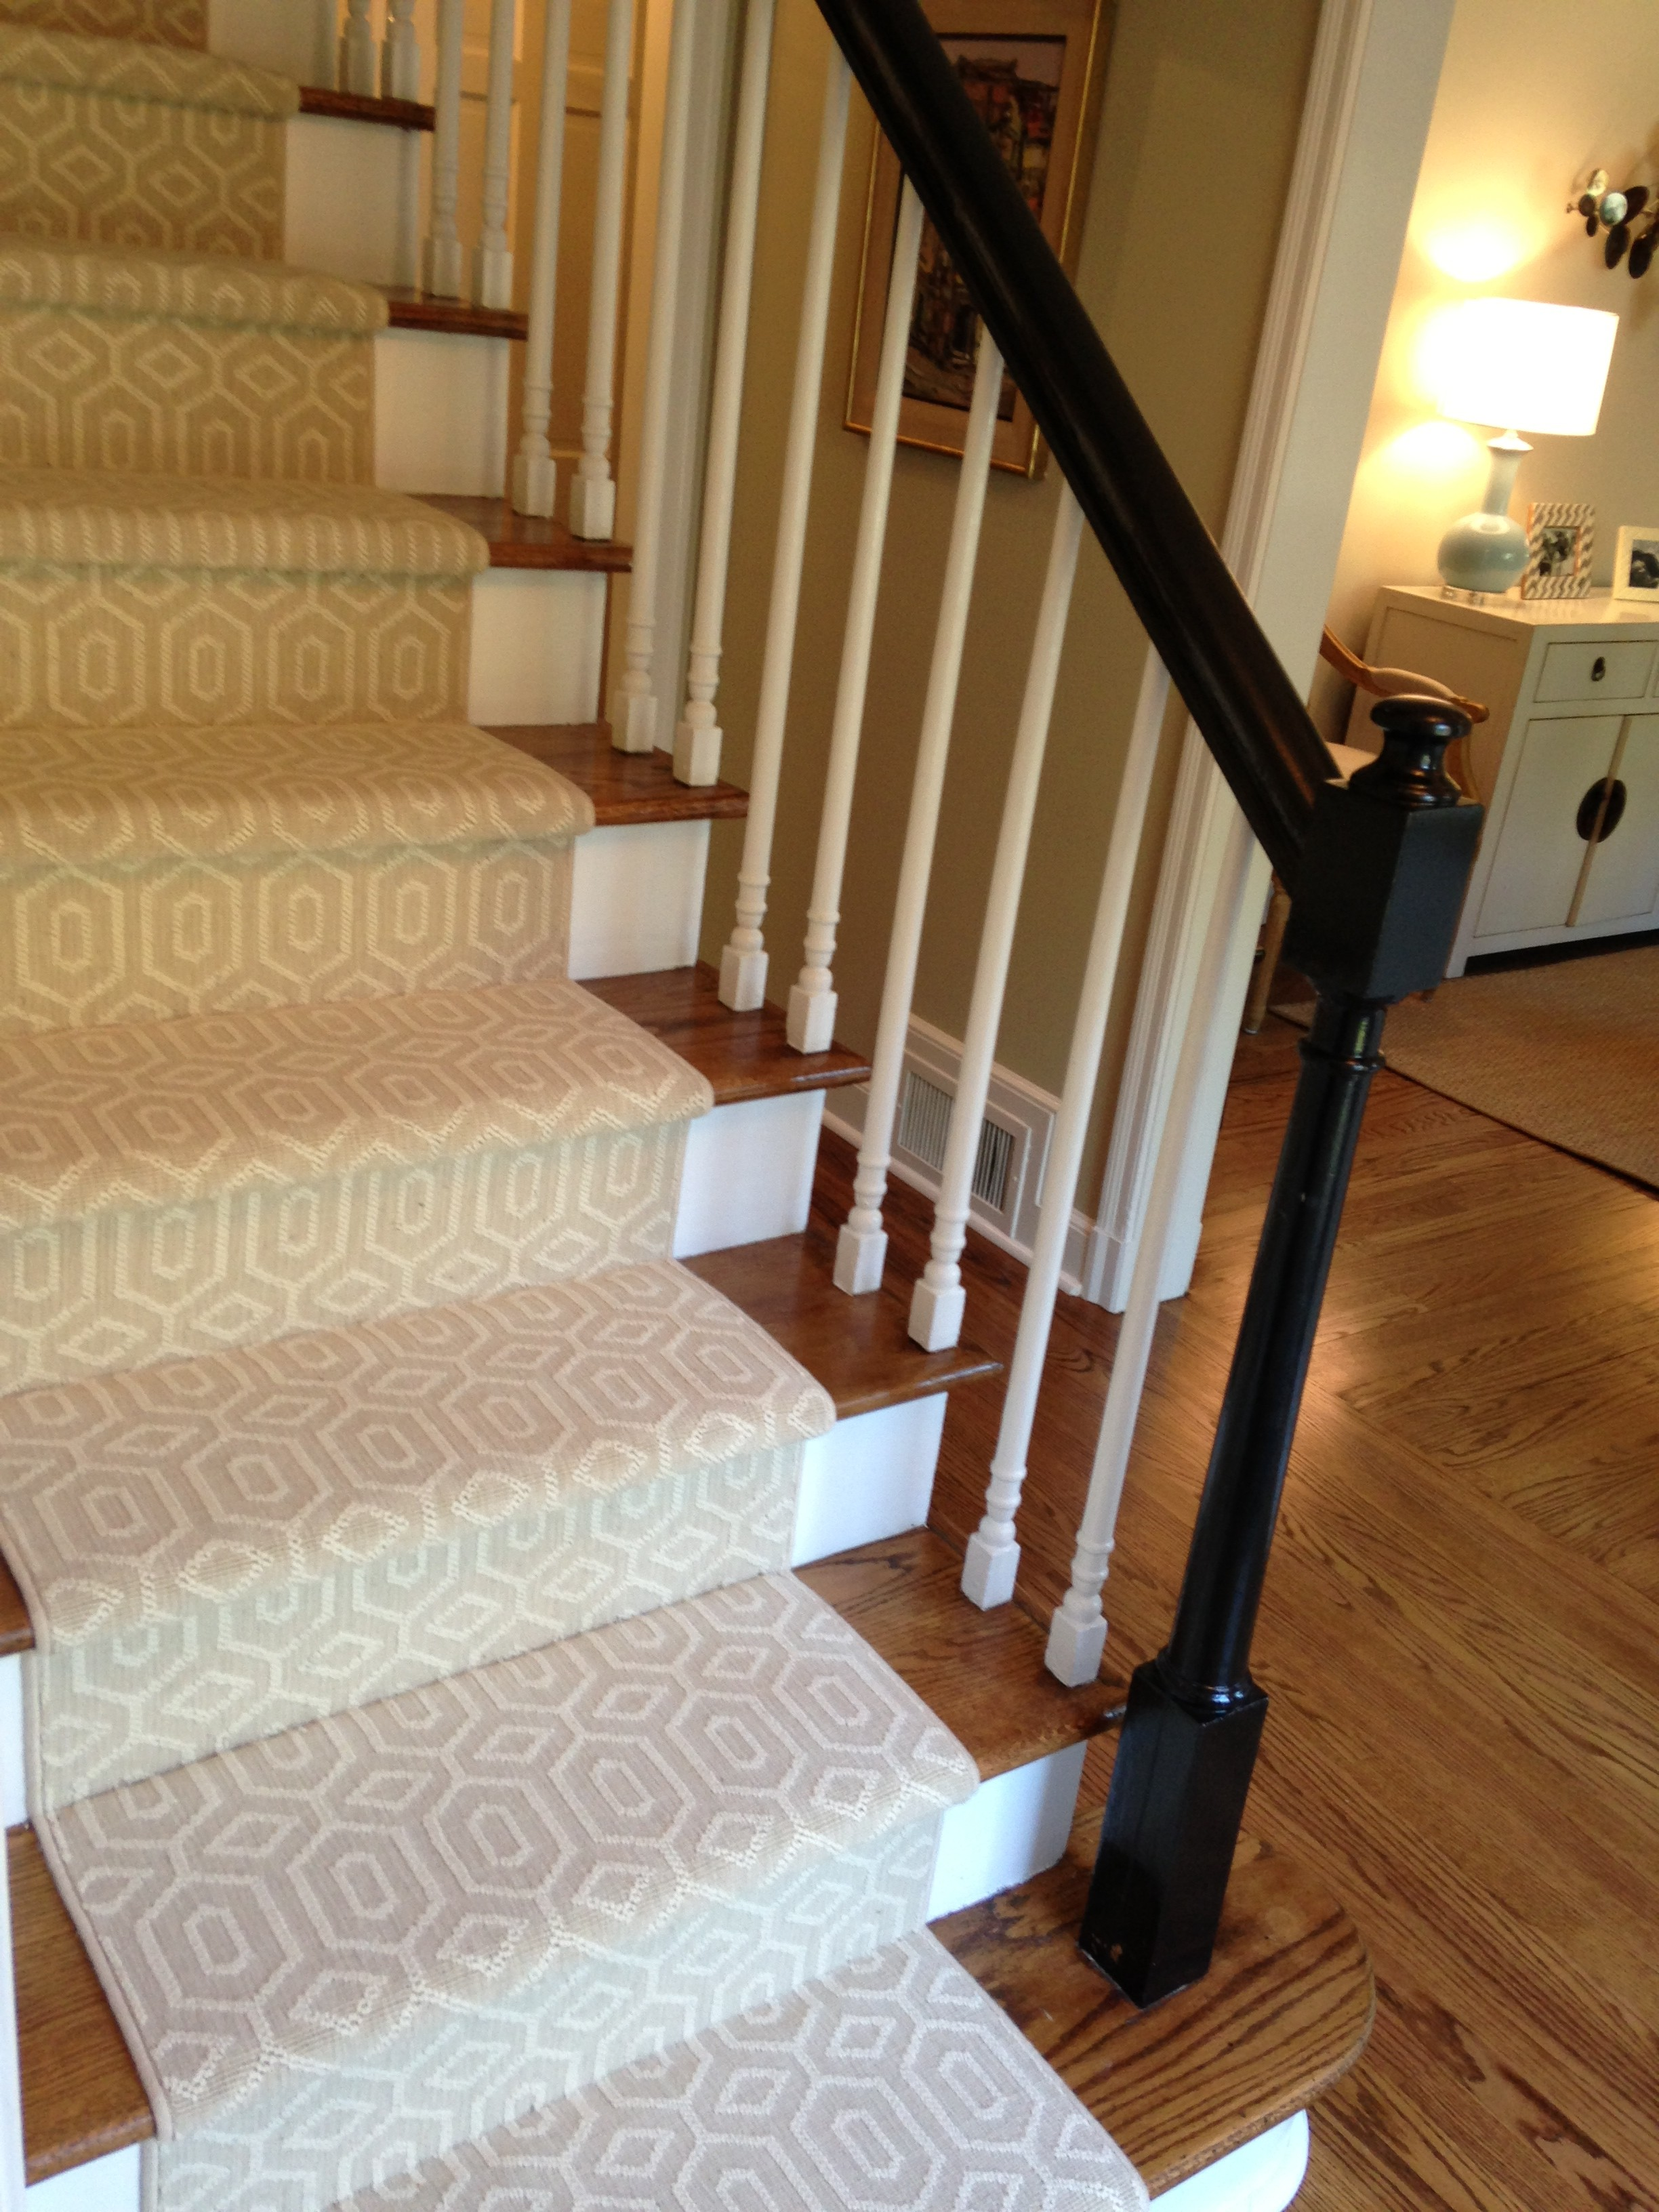 Images of Choosing a Stair Runner: Some Inspiration and Lessons Learned stair runner carpet